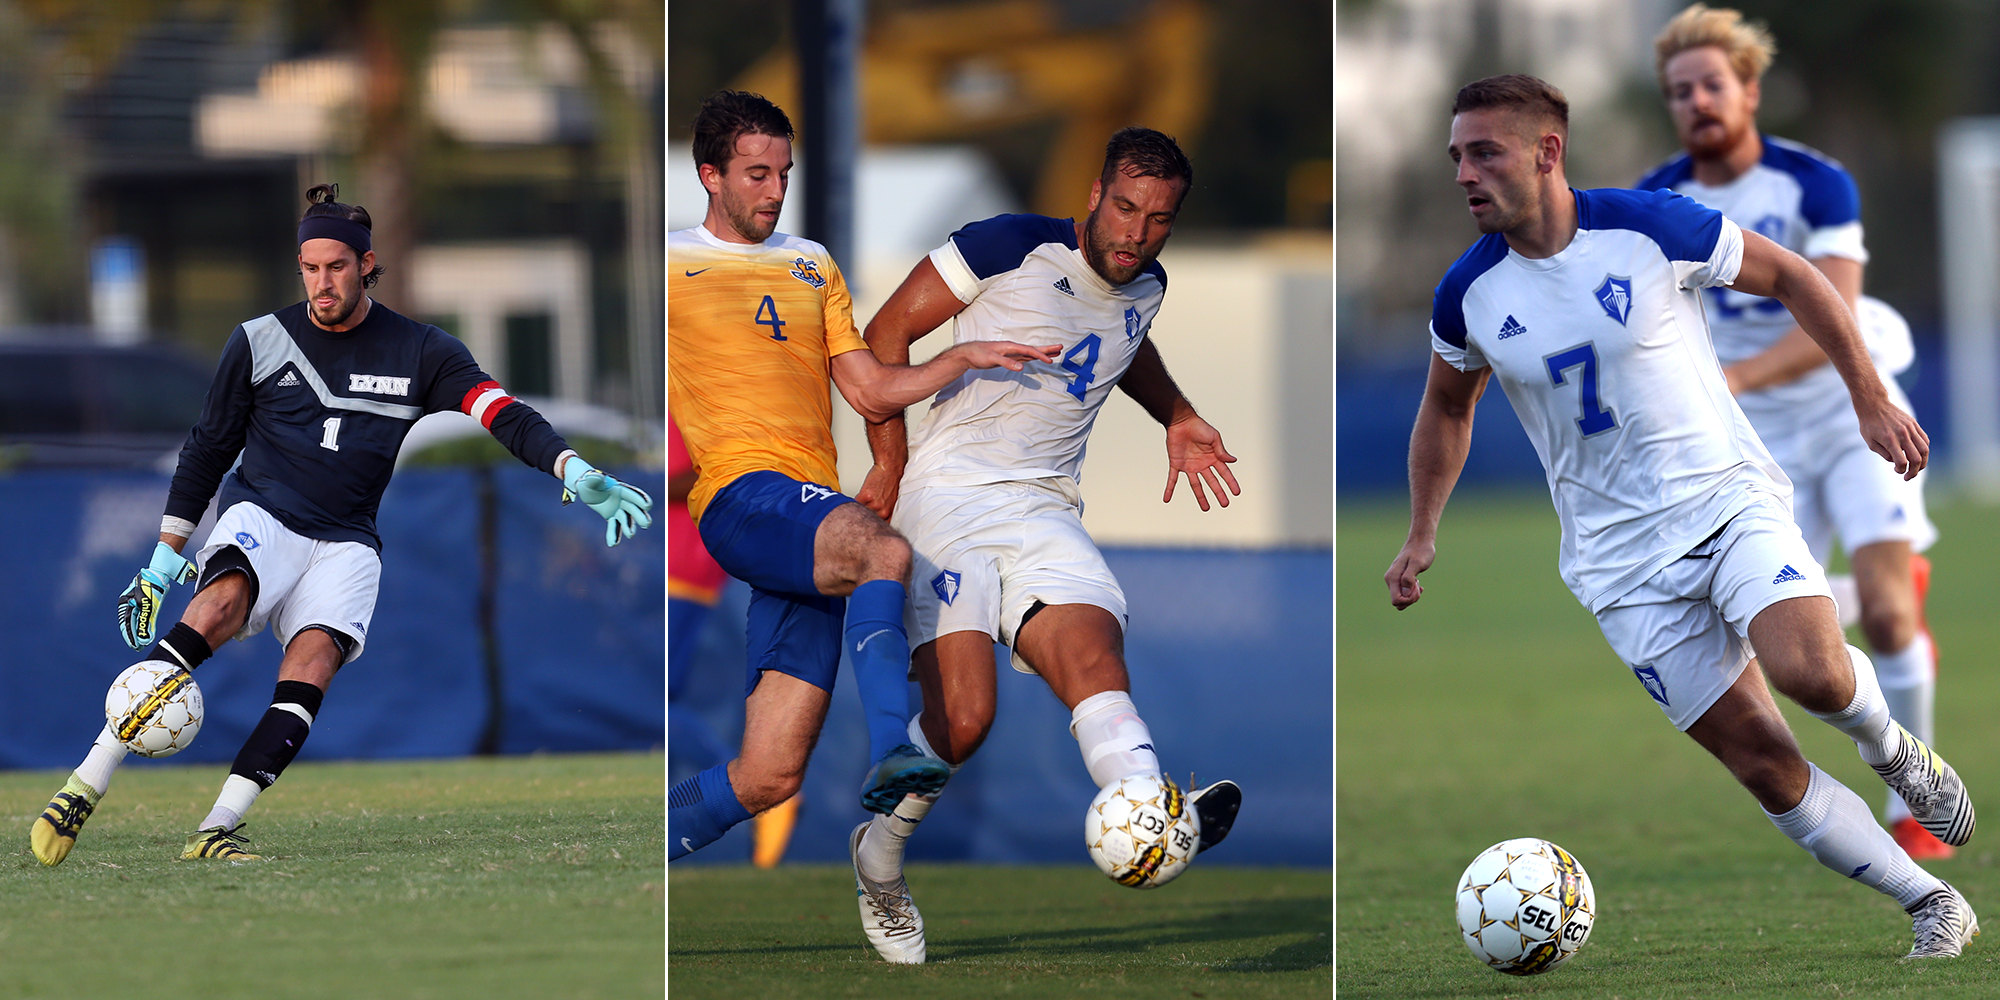 Men's Soccer Sees Three Selected All-SSC